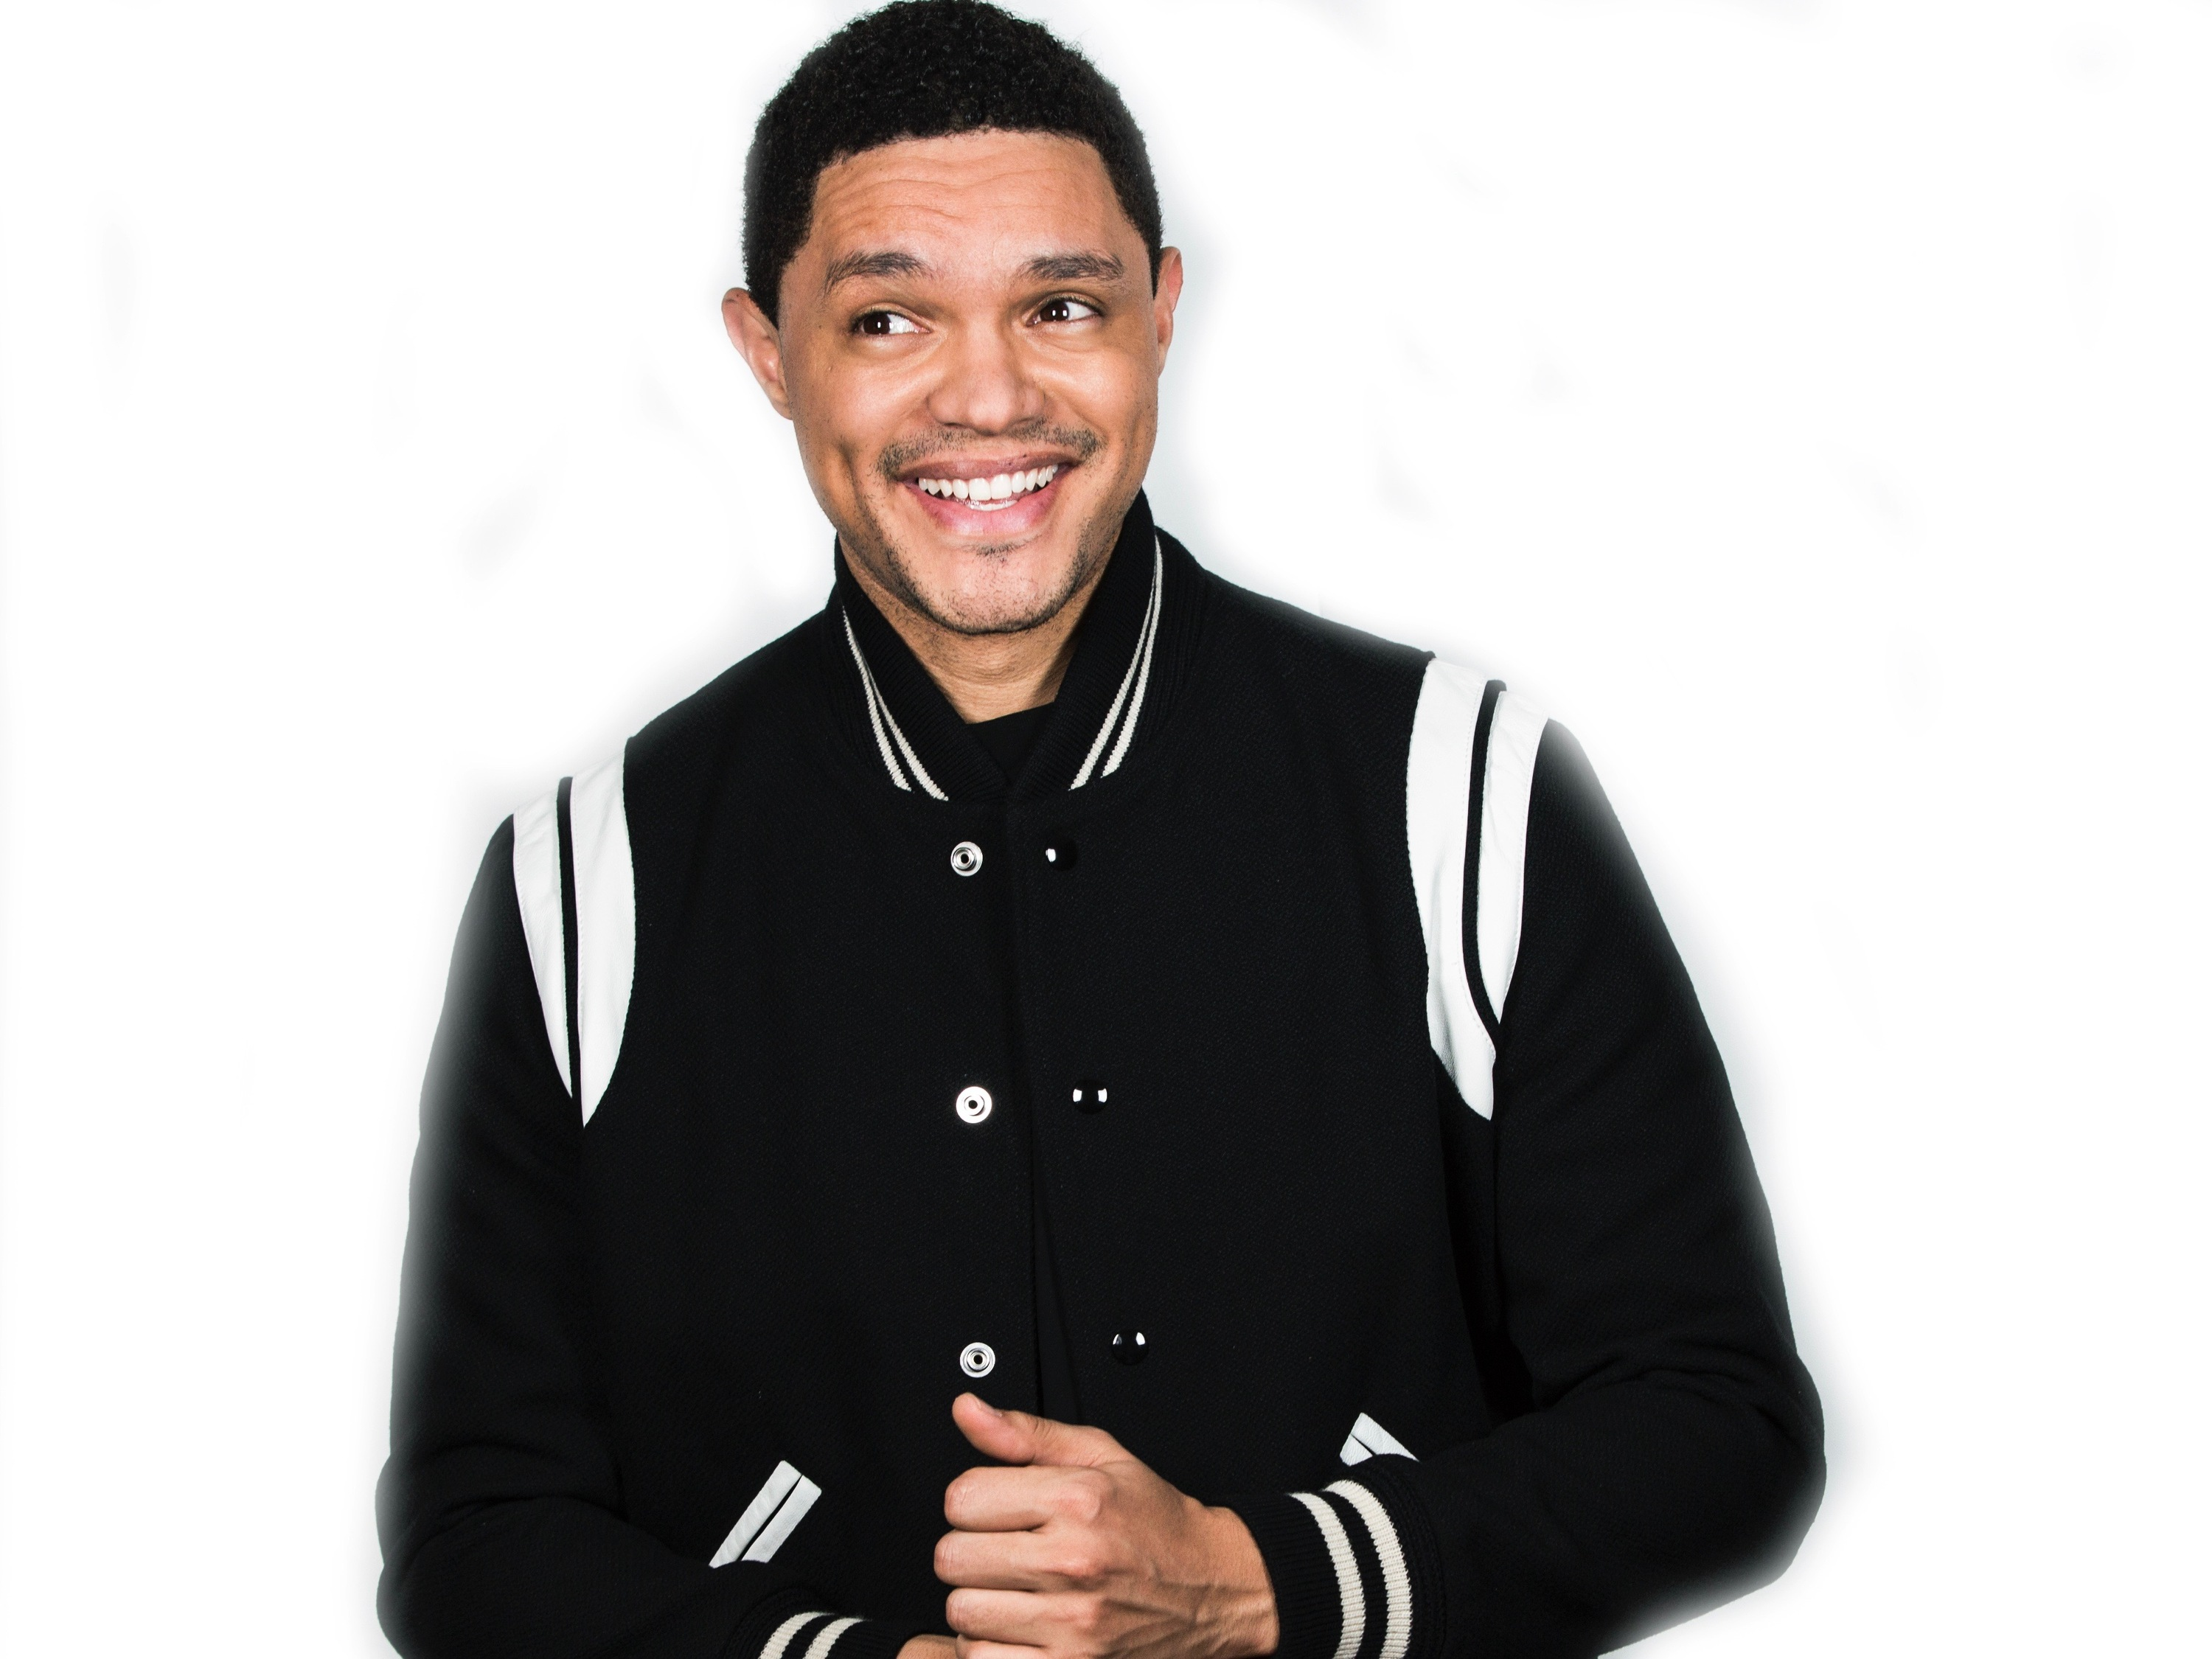 The Daily Show host Trevor Noah brings his Loud and Clear tour to Hong Kong